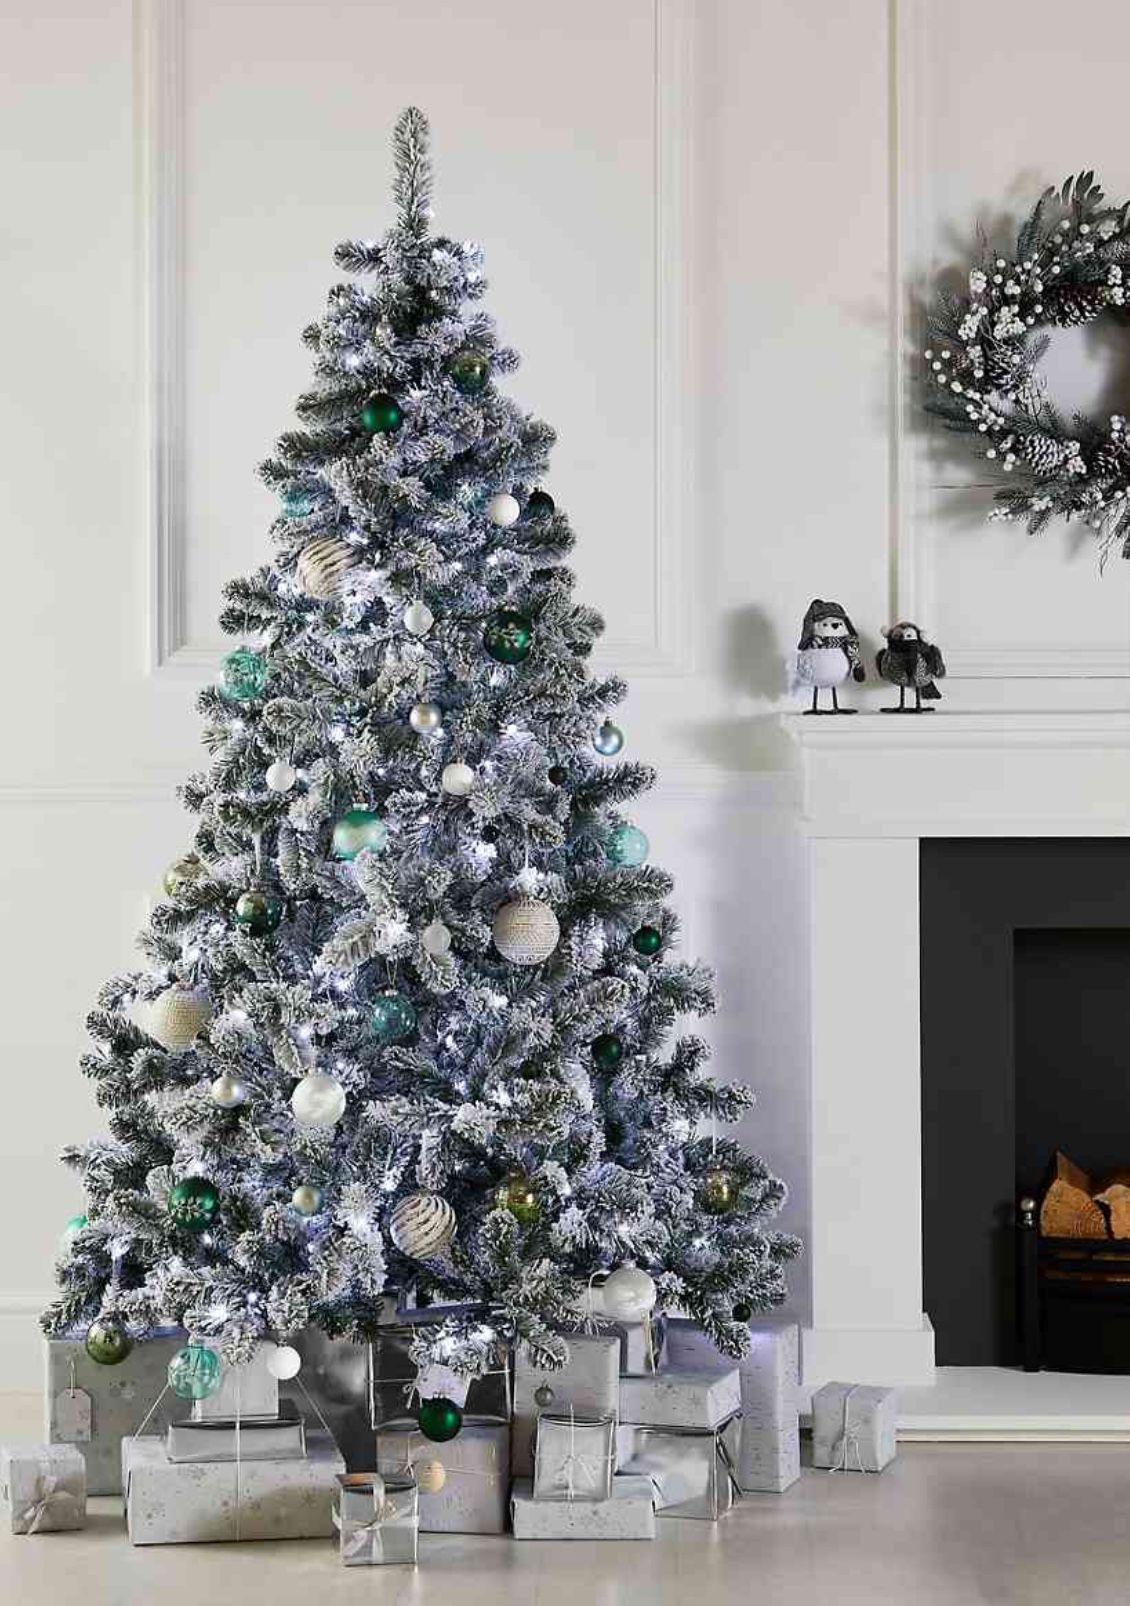 Pin by Gloria Lebron on Christmas decorations (With images ...